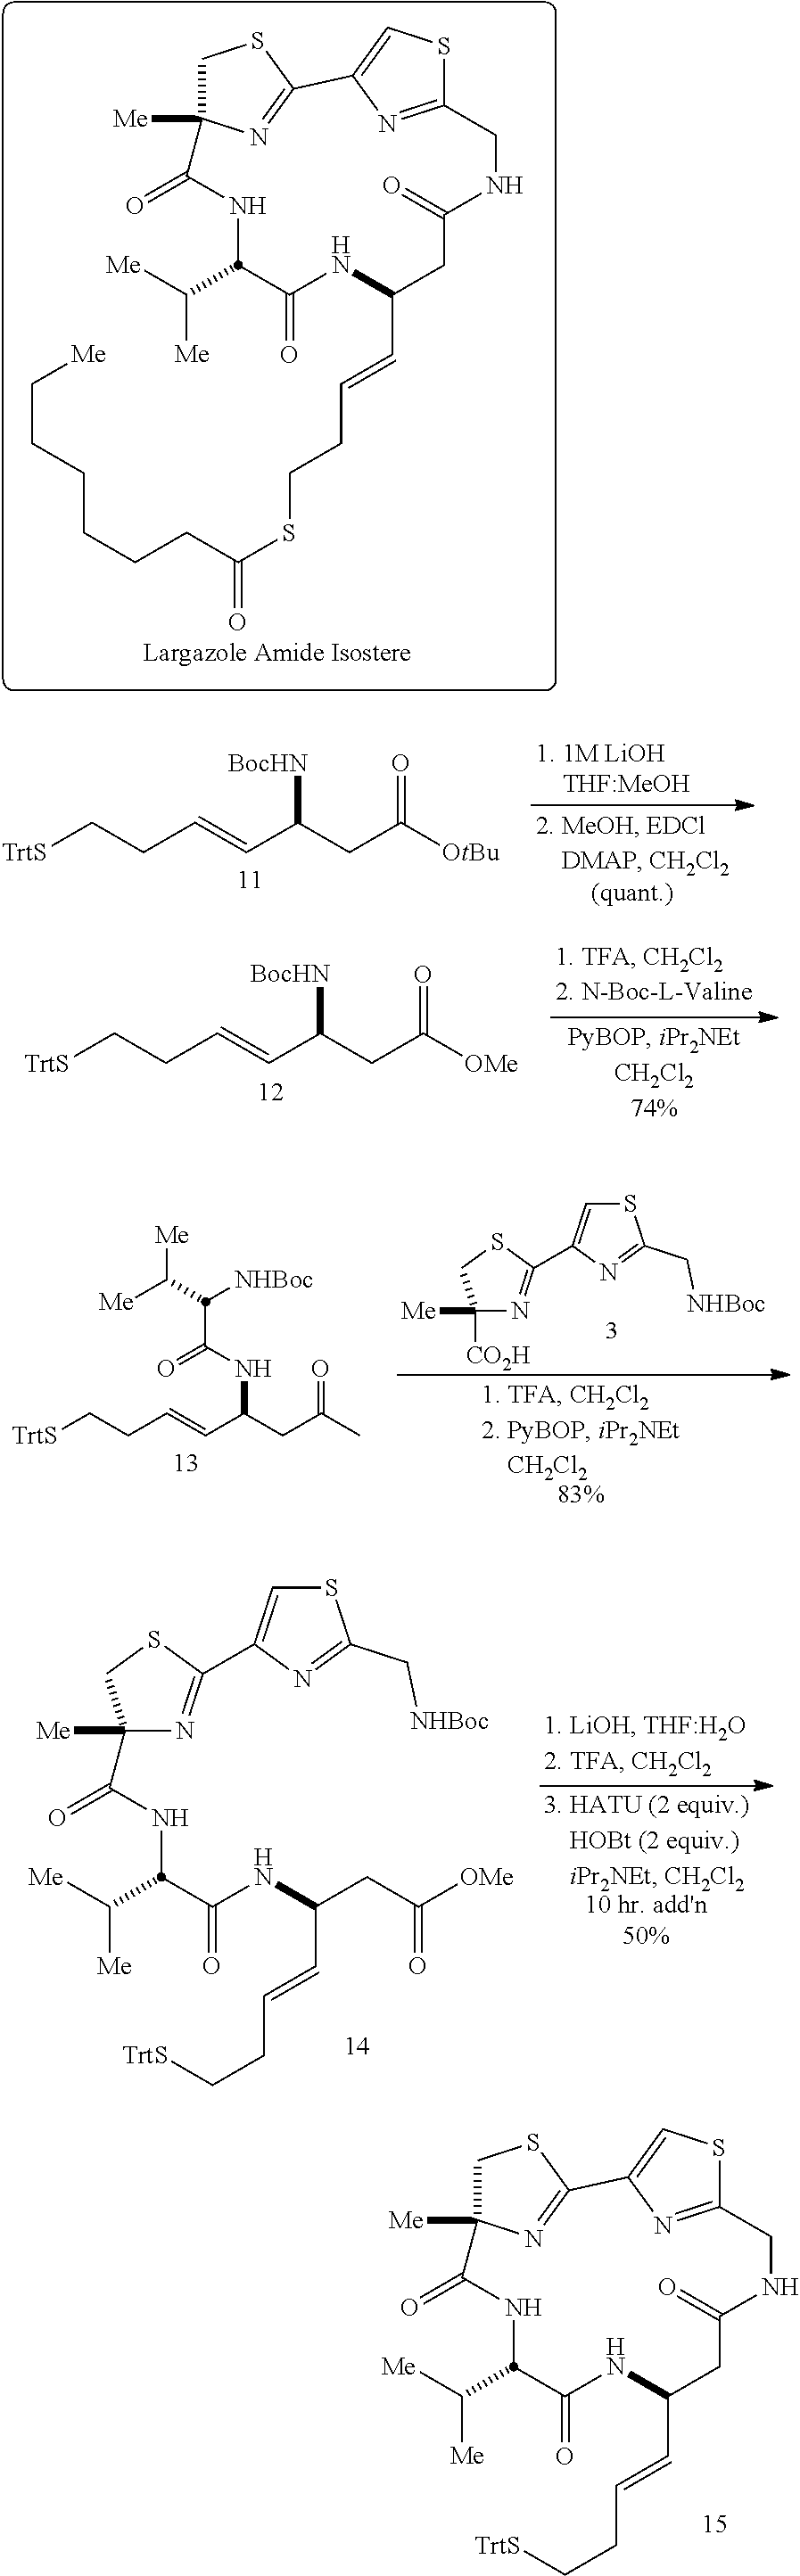 us9186402b2 method for preparing largazole analogs and uses Ford 7.3 IPR figure us09186402 20151117 c00061